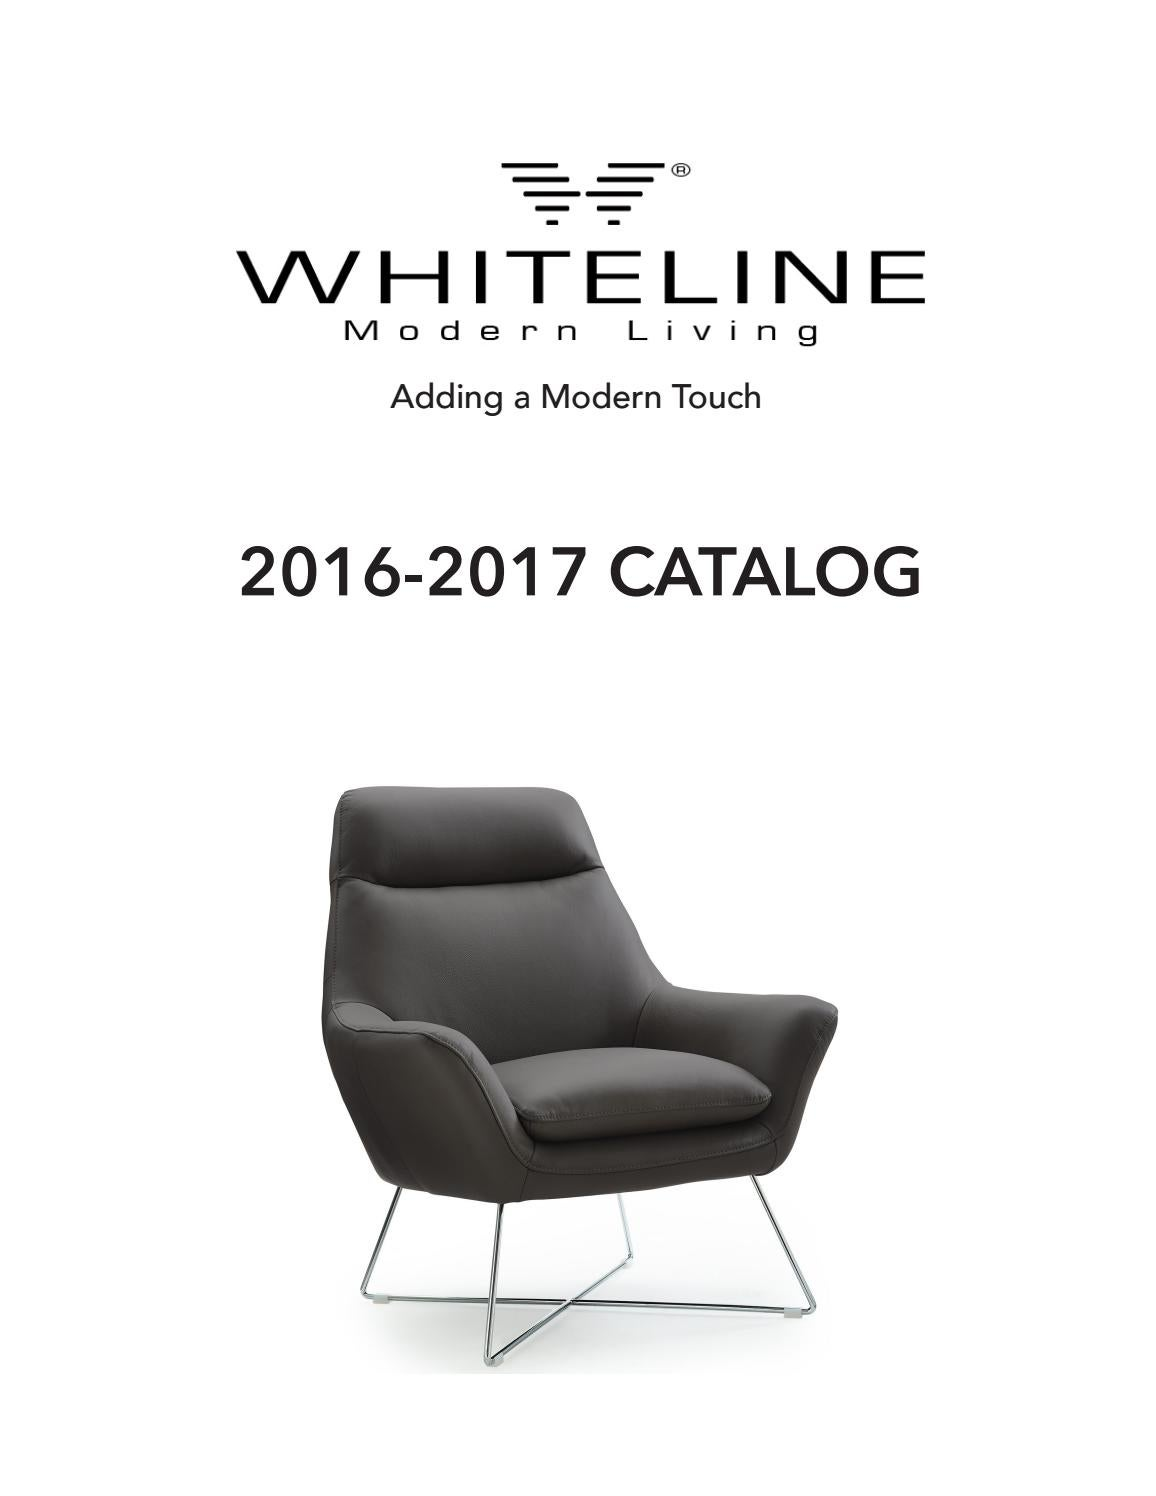 Whiteline modern living 2016 2017 catalog by whiteline modern living issuu